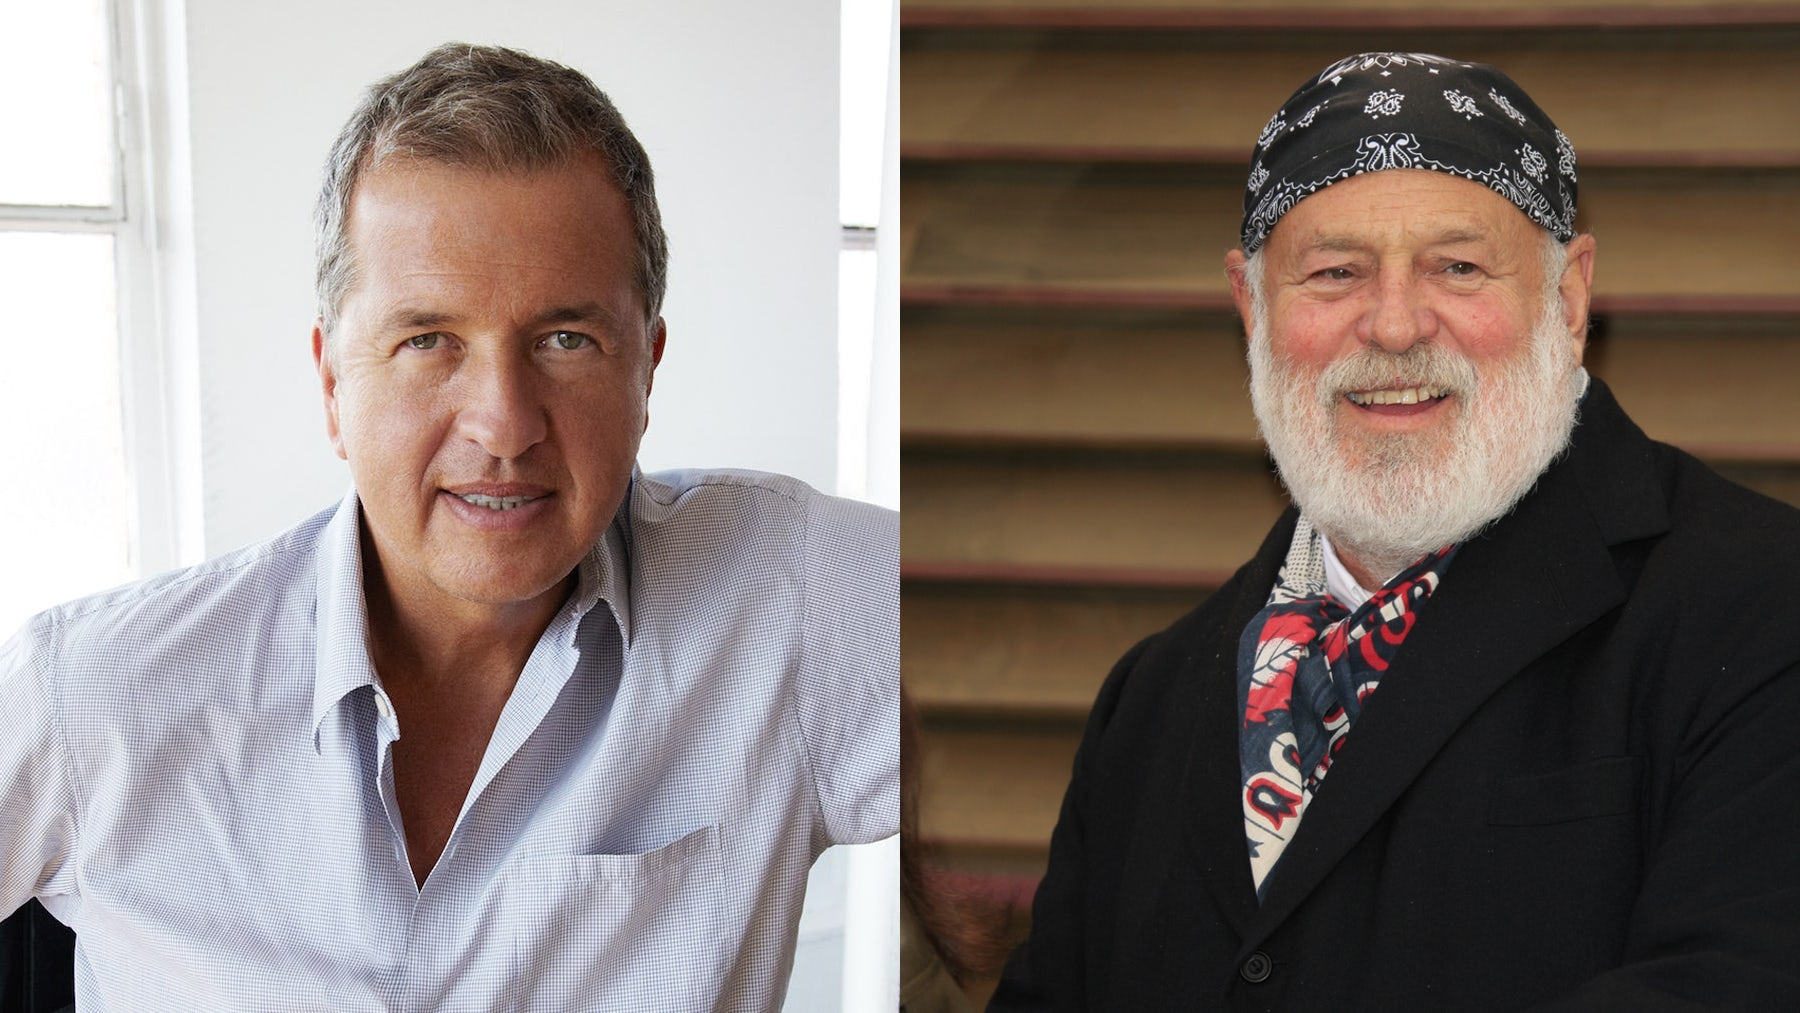 Mario Testino and Bruce Weber Accused of Sexual Exploitation in New York Times Investigation